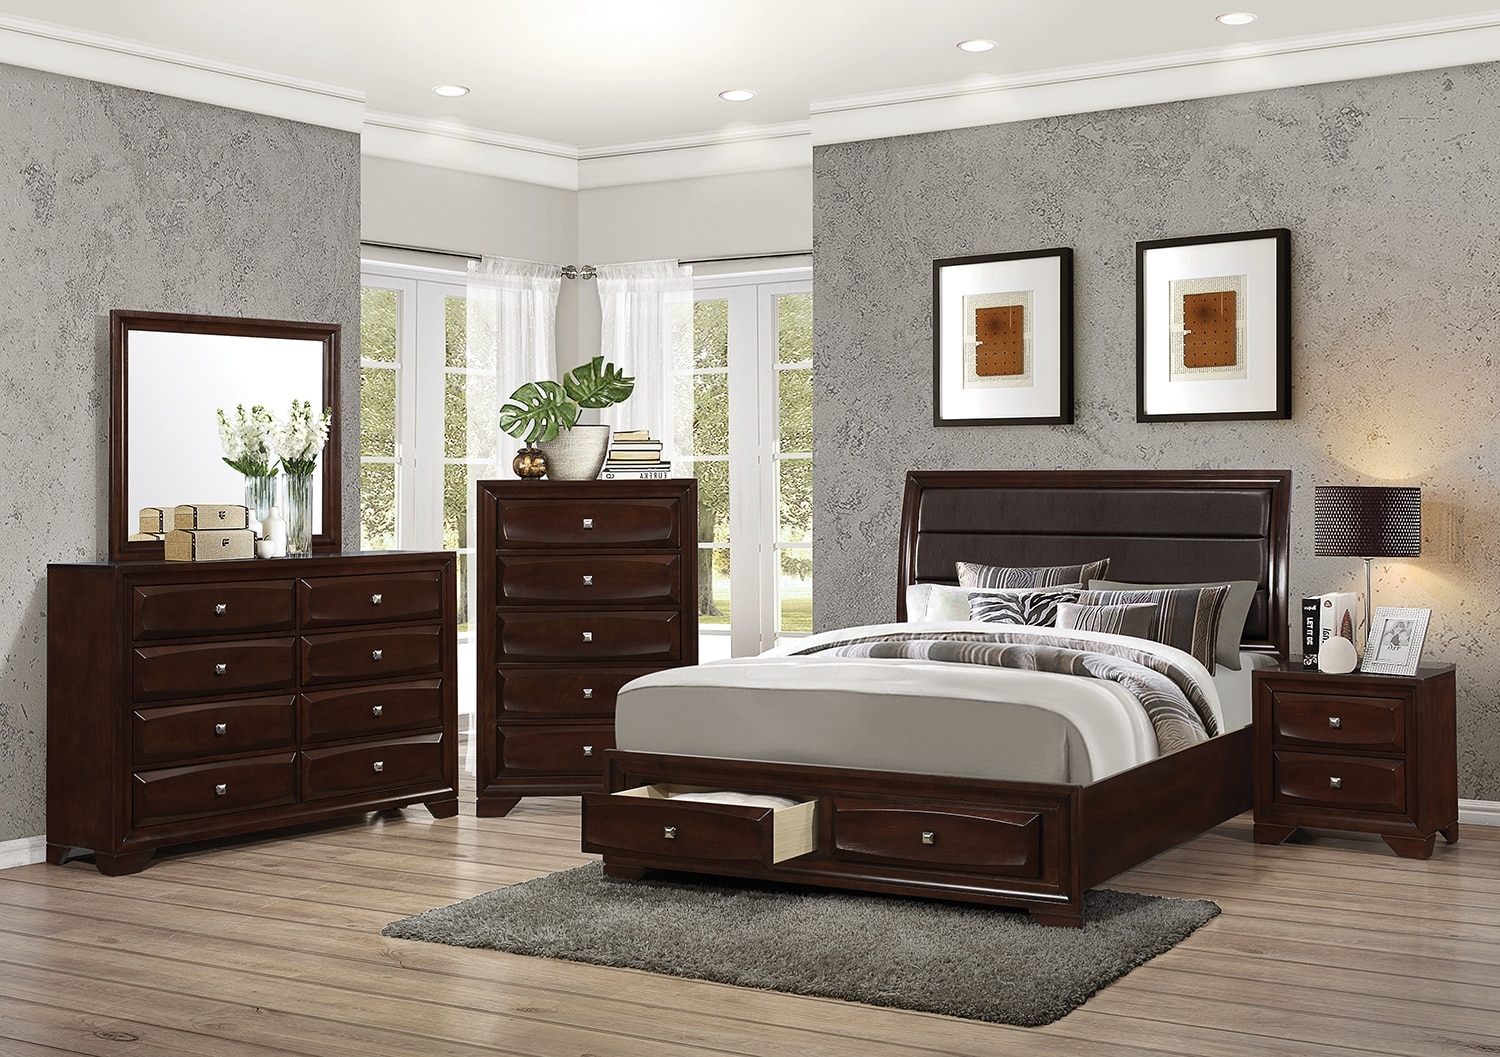 Bedroom packages the brick - Cheap bedroom furniture packages ...